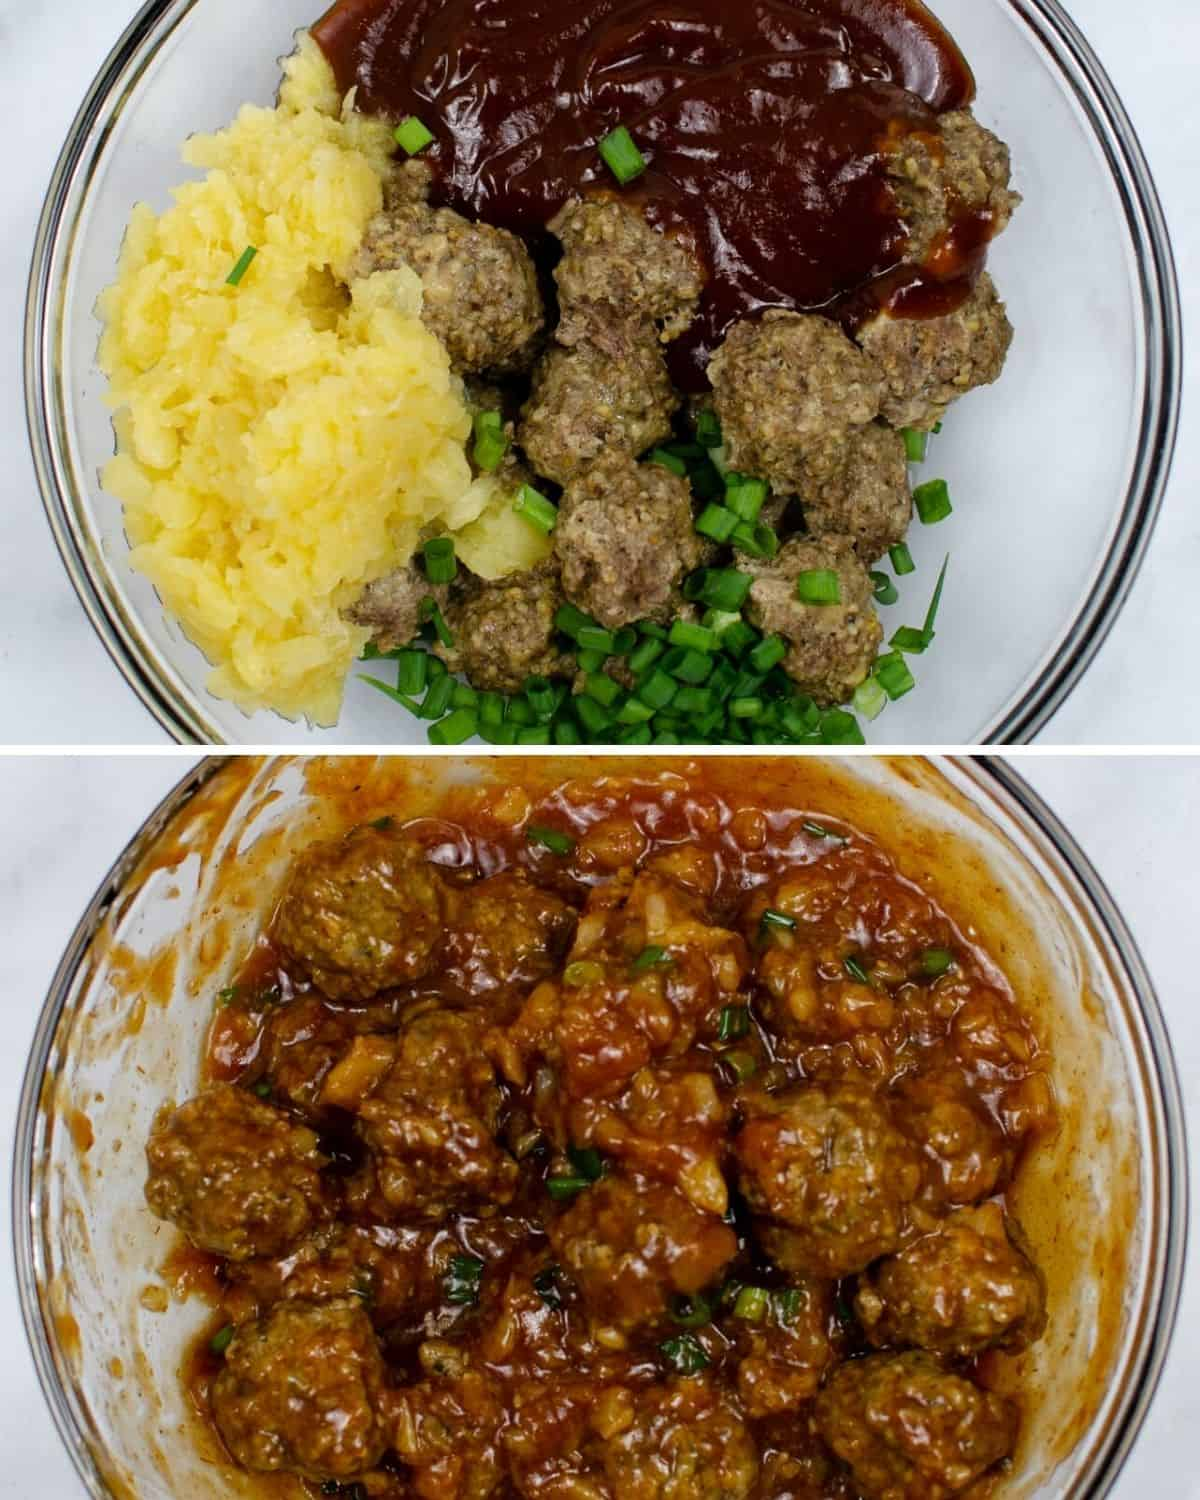 A collage of meatballs in a glass bowl with bbq sauce, and pineapples.then all mixed together in another bowl.